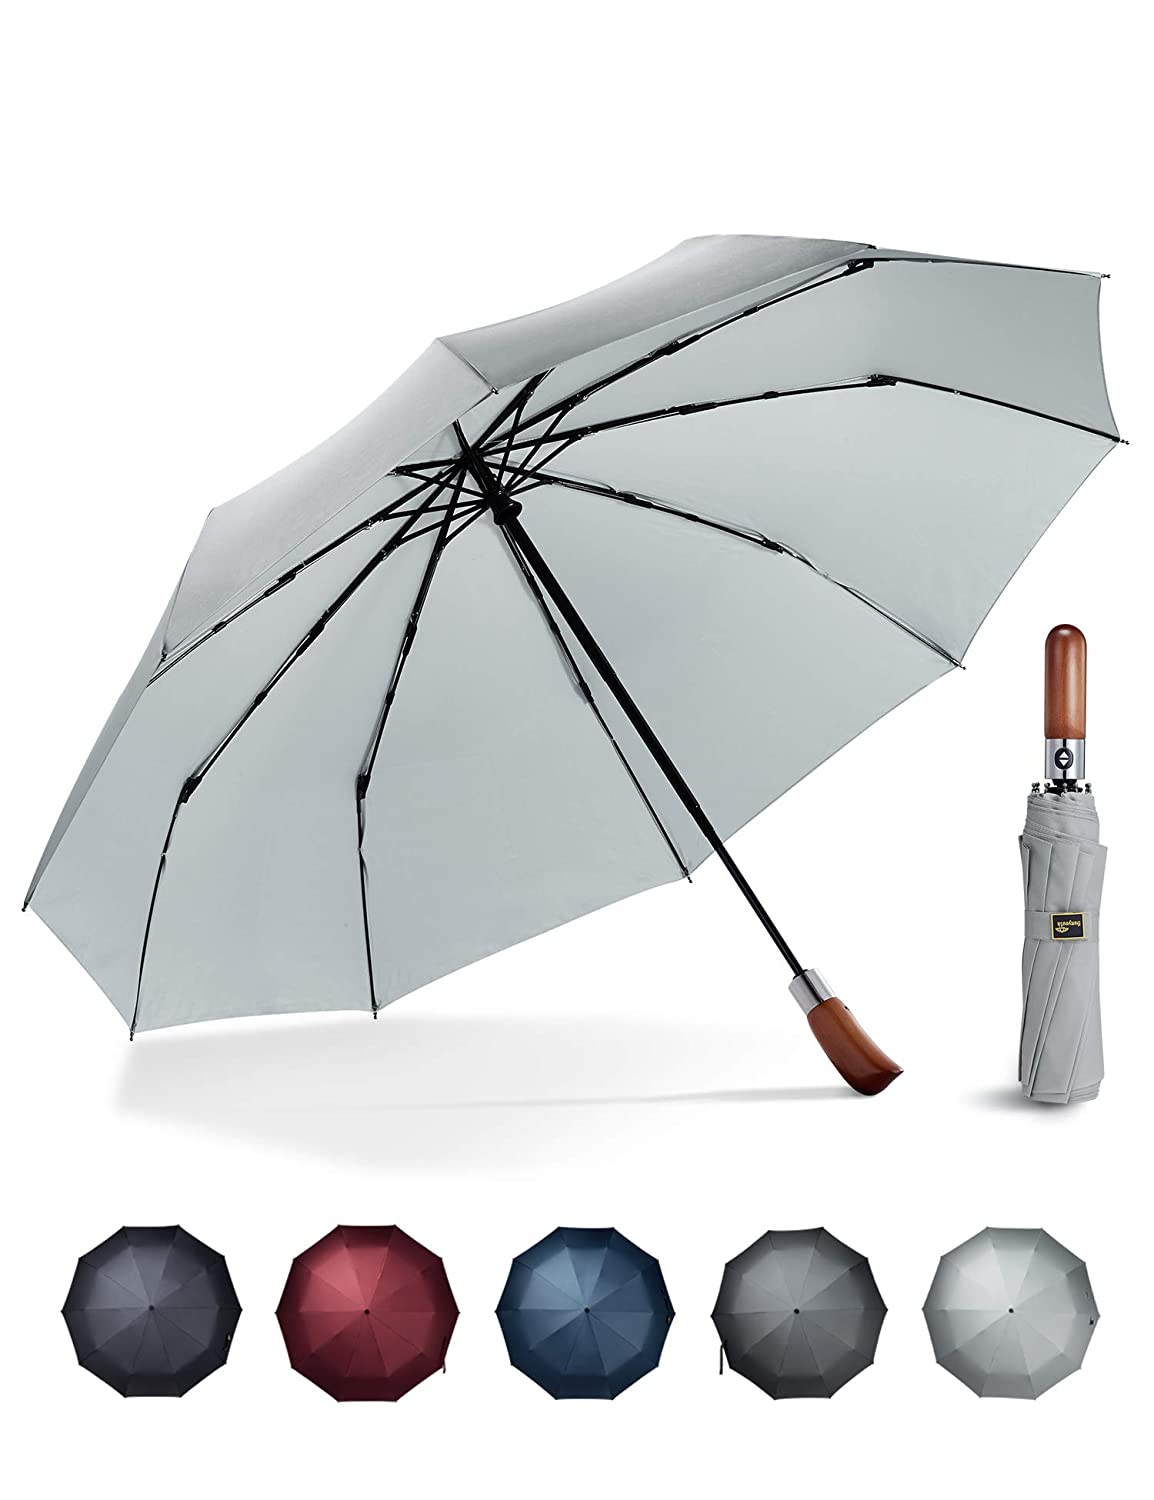 eb1c4996feb0 Sunyouth Windproof Travel Umbrella, Automatic Compact Rain Umbrella with  Wood Handle for Men Women and Family-Easy Touch Auto Open Close-10 Ribs ...